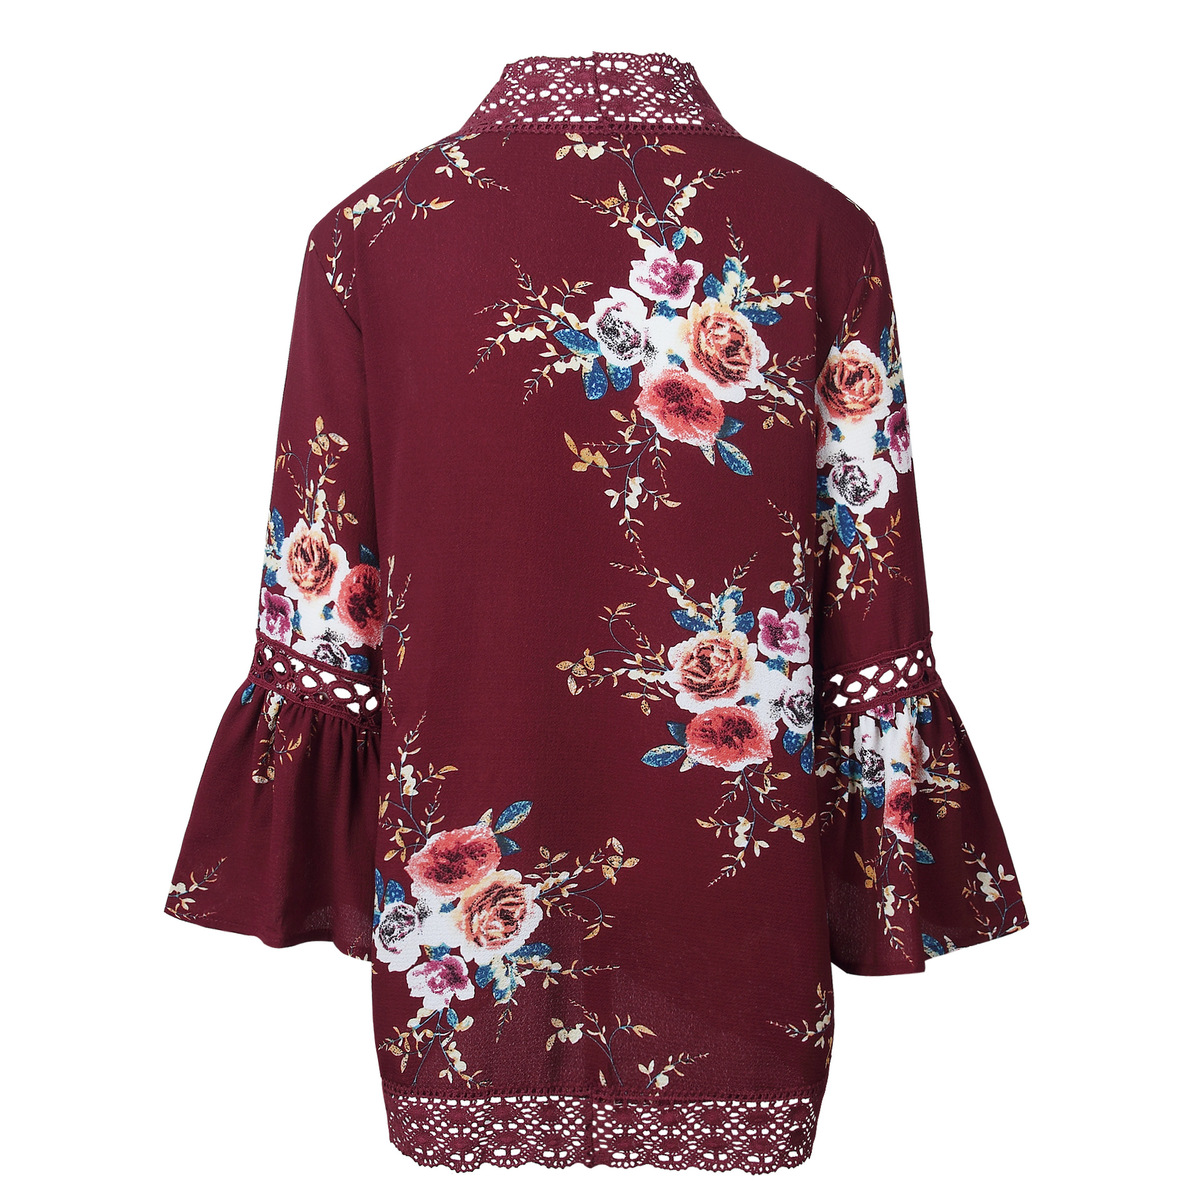 HTB1kWr.kIIrBKNjSZK9q6ygoVXaz Women Plus Size Loose Casual Basic Jackets Female 2018 Autumn Long Flare Sleeve Floral Print Outwear Coat Open Stitch Clothing